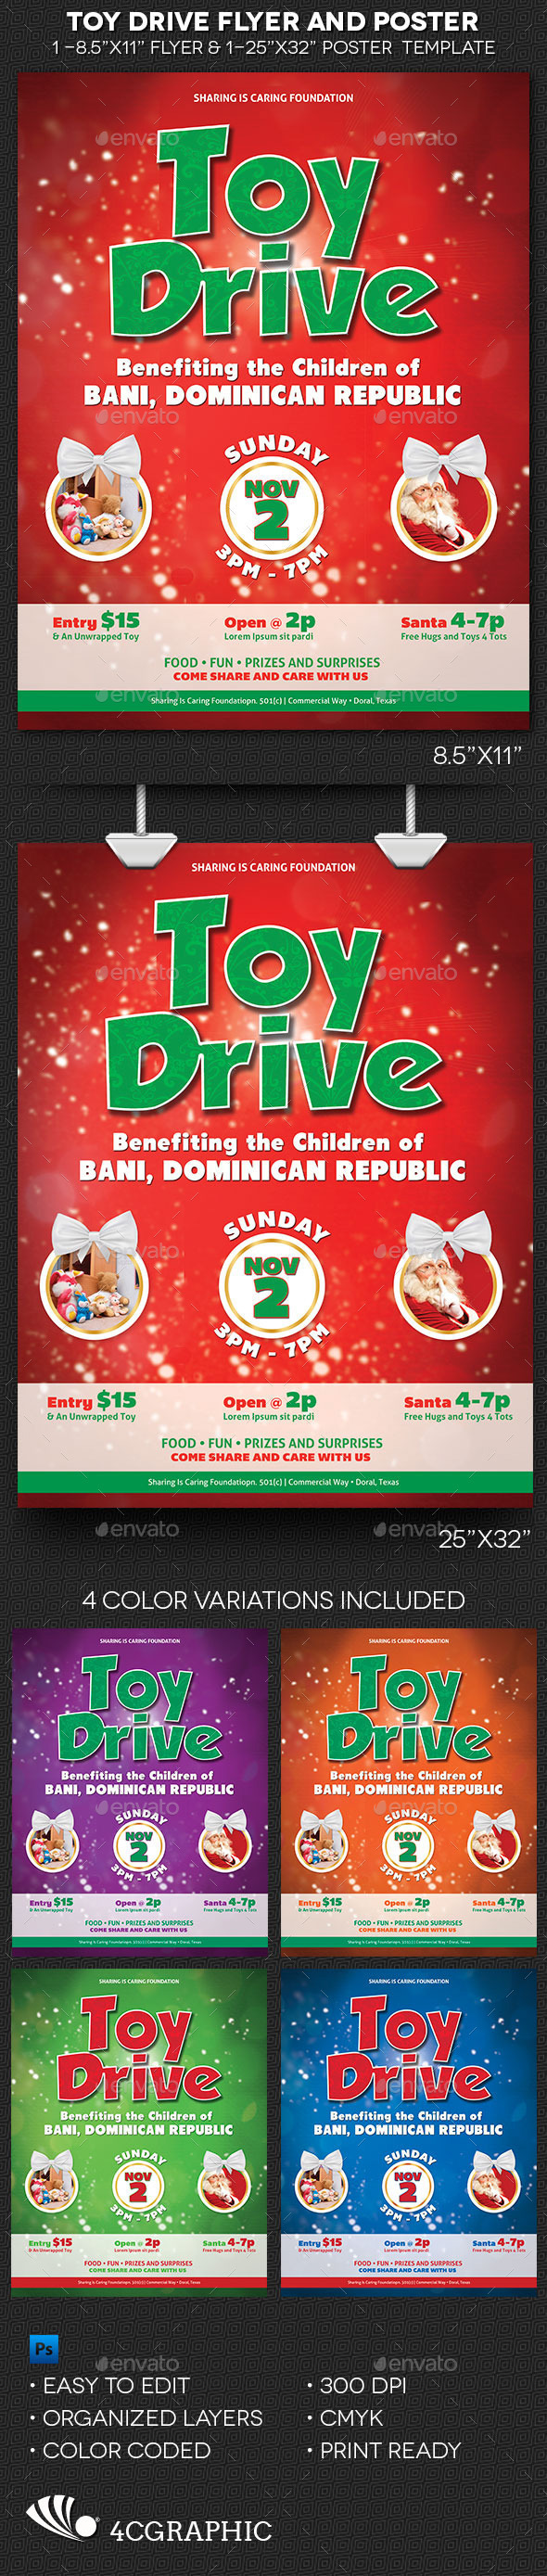 Toys For Tots Flyers Printable : Toy drive flyer and poster template on behance